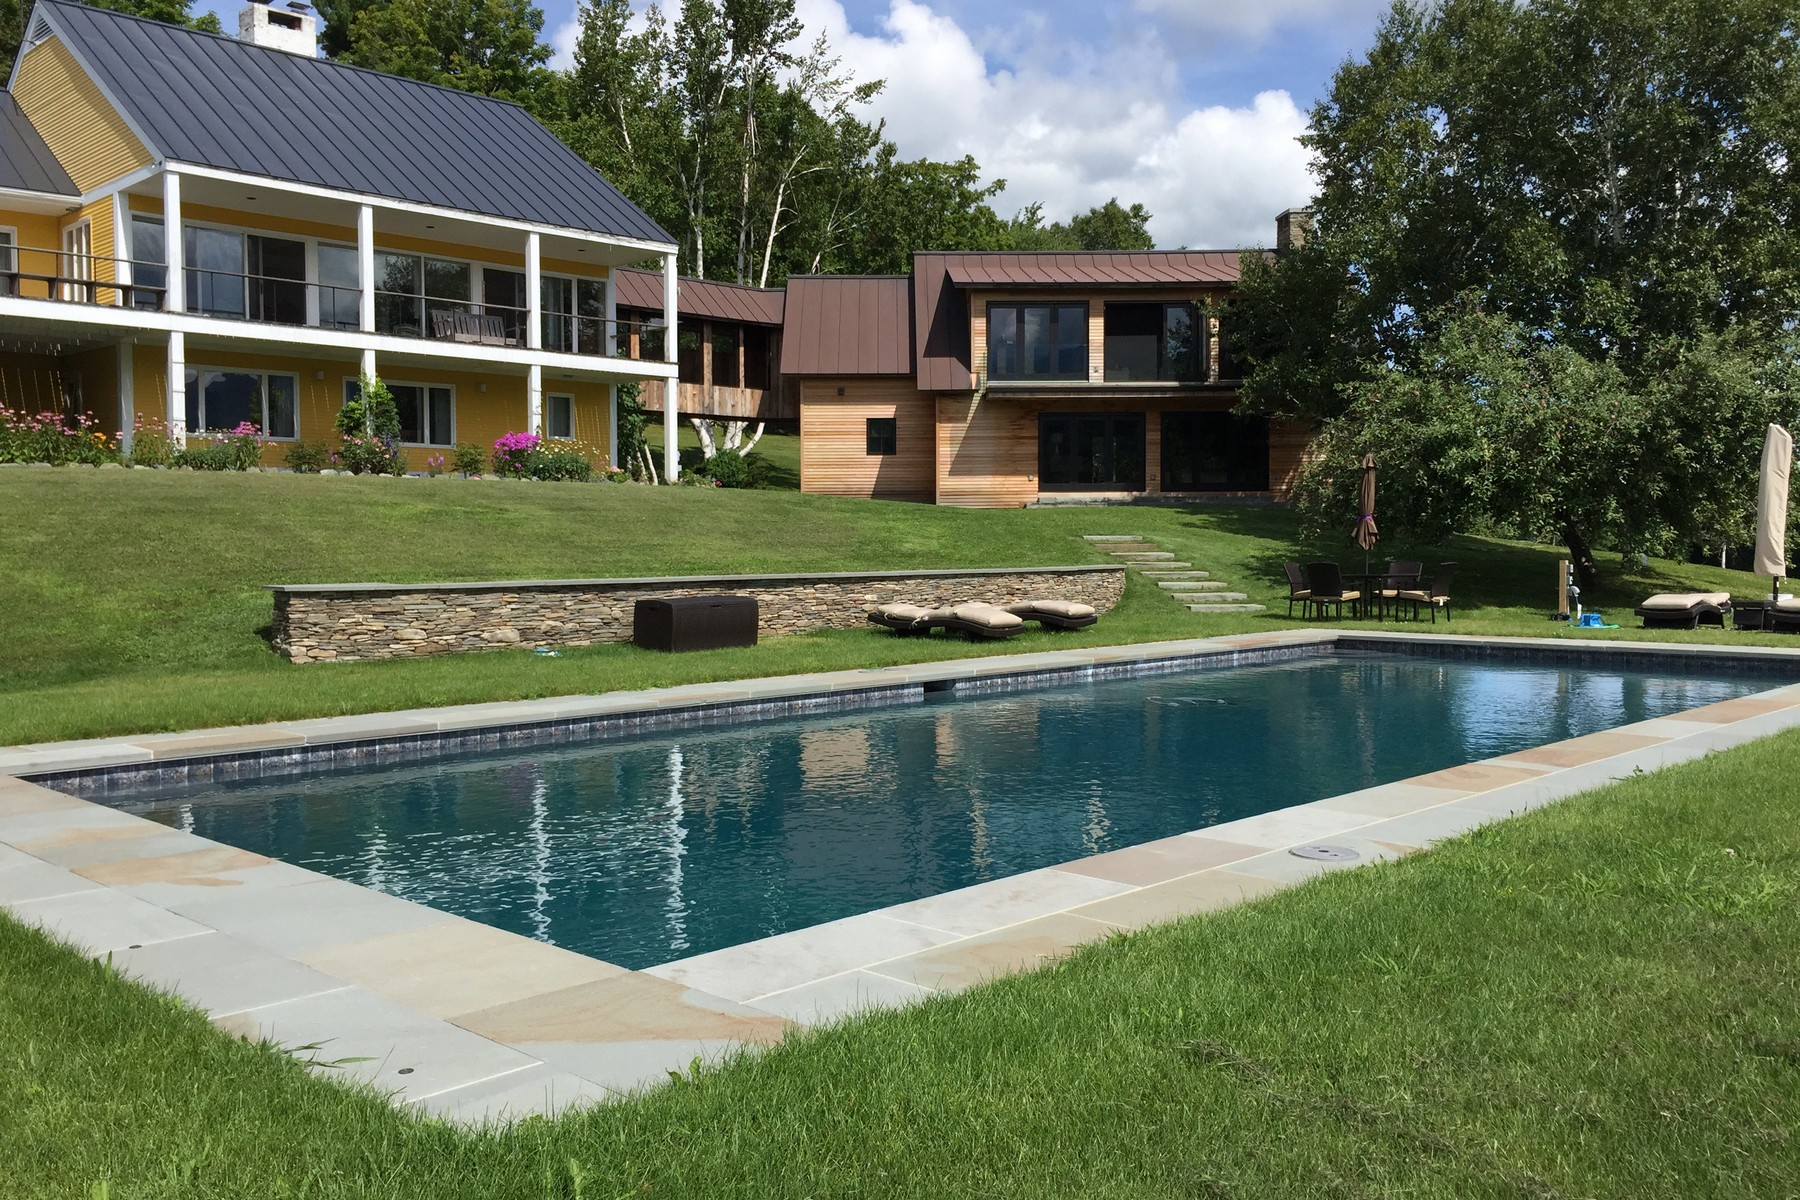 Single Family Home for Sale at Smugglers Notch Farm 1039 Pratt Rd Cambridge, Vermont, 05464 United States